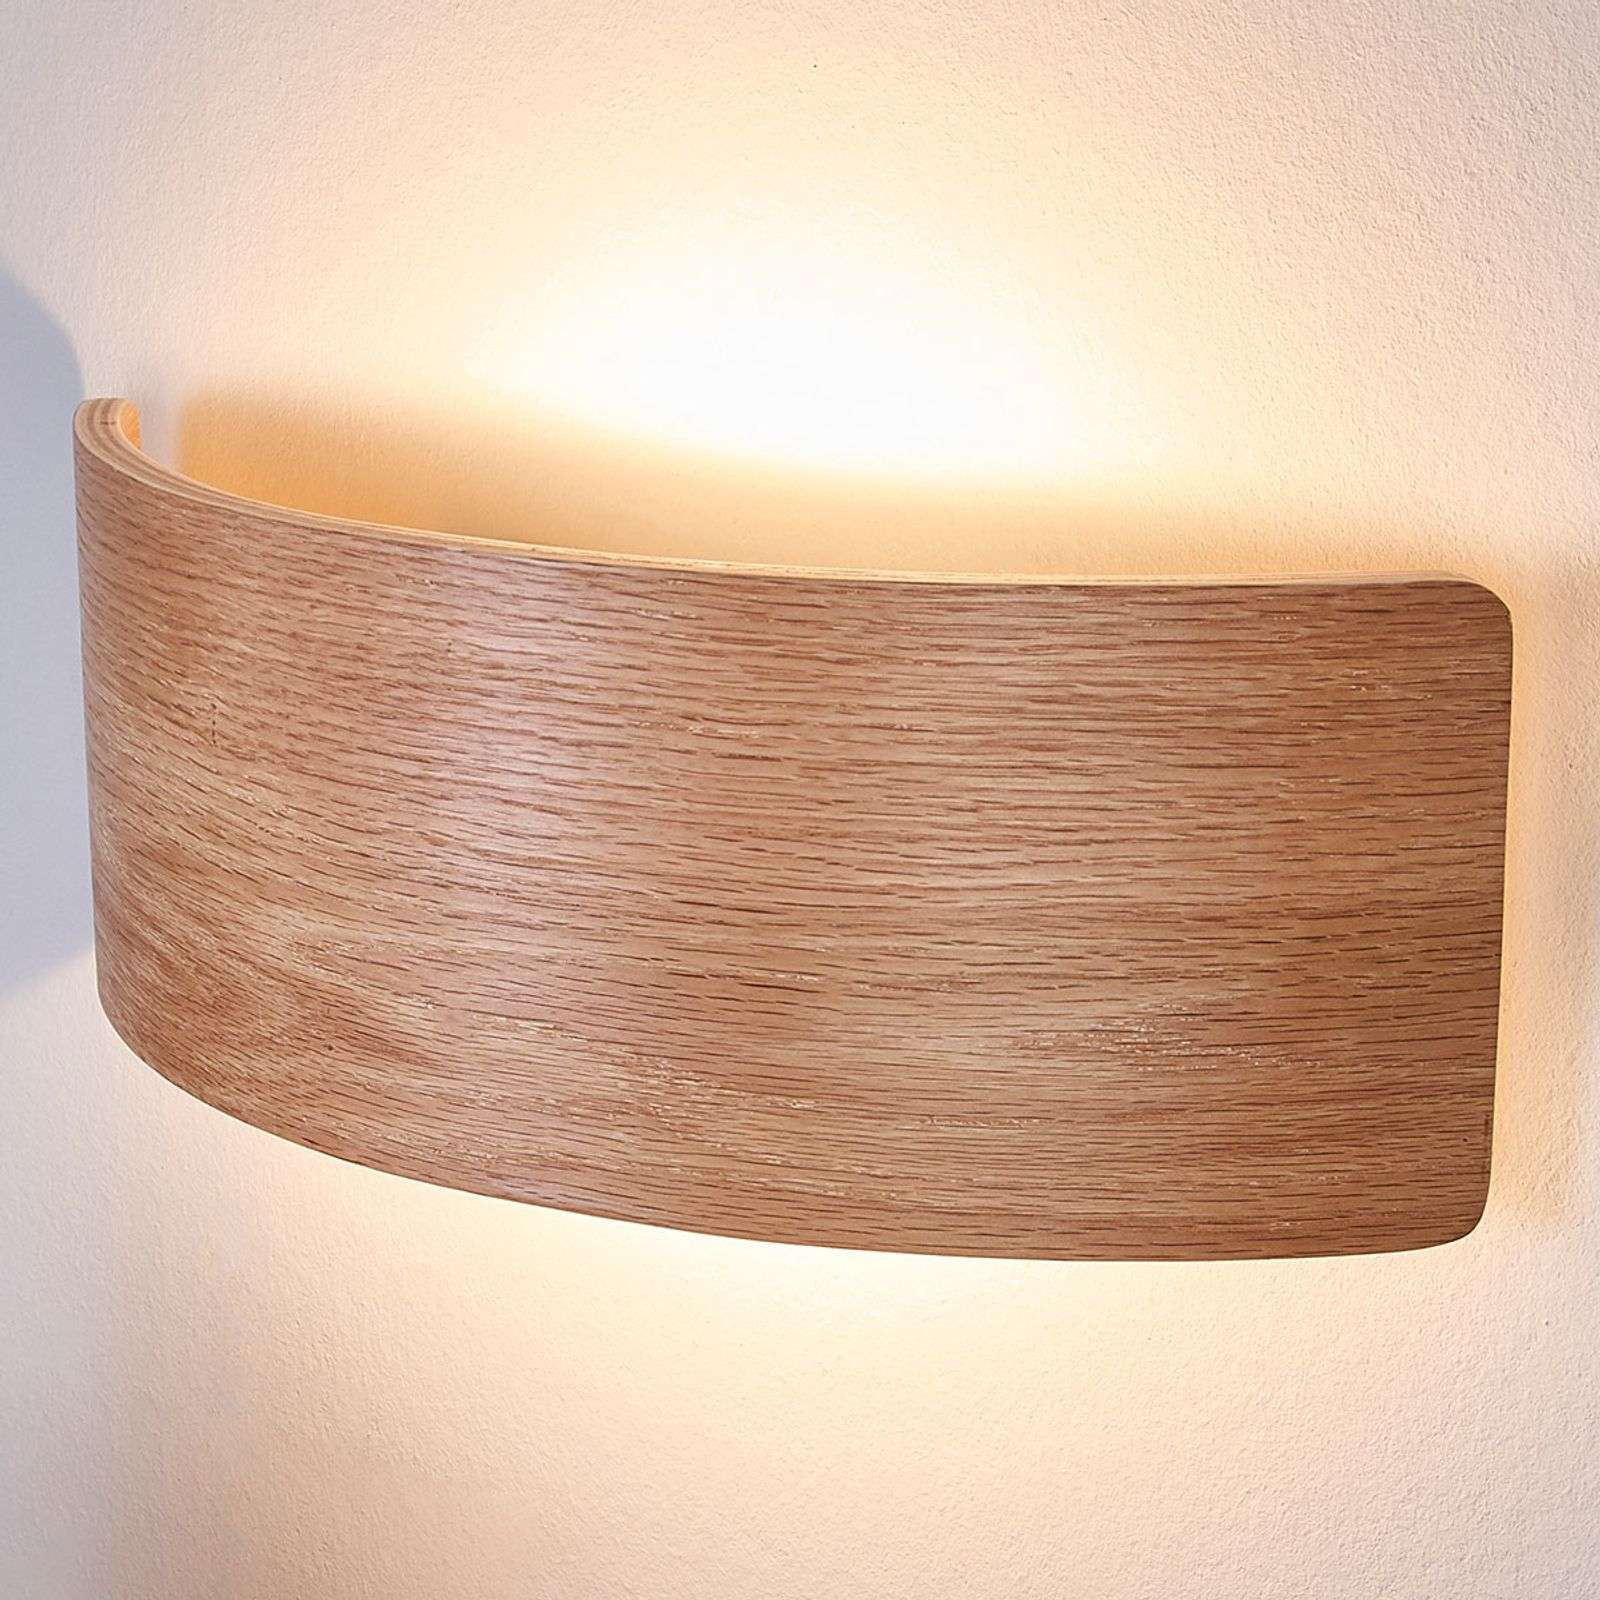 Attraente applique LED Rafailia di legno